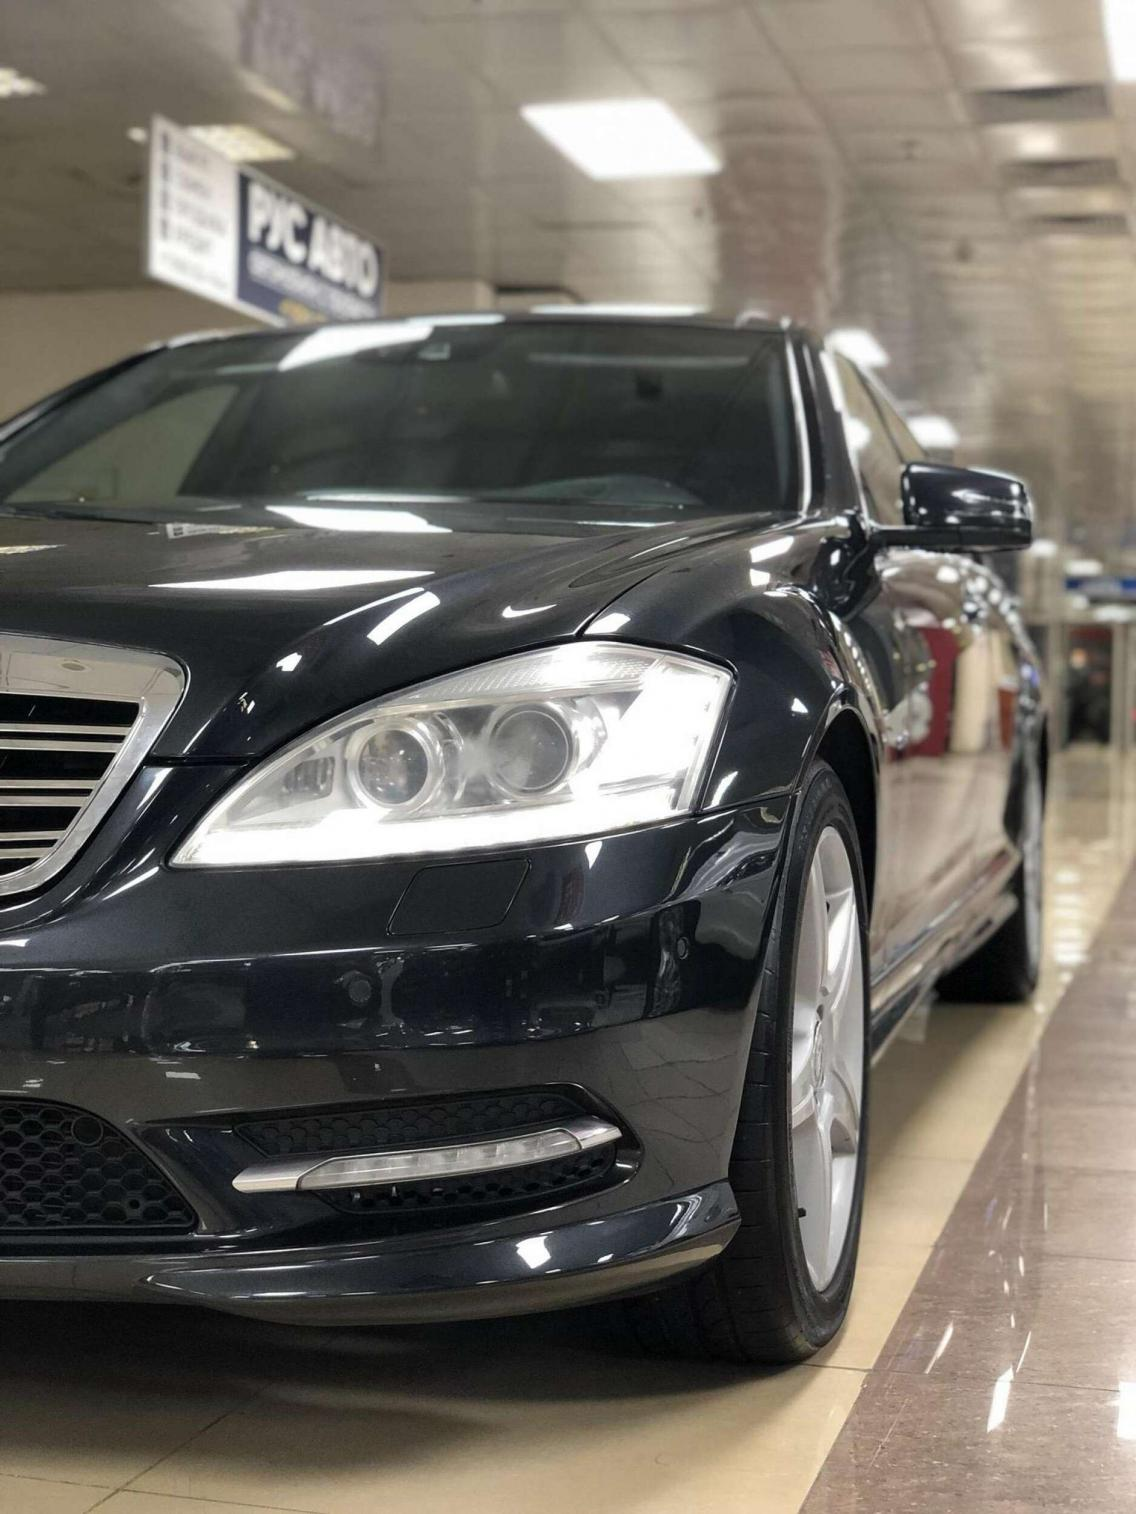 Фотография 5 Mercedes-Benz S-Класс W221 [рестайлинг] S 500 BlueEFFICIENCY 4MATIC 7G-Tronic (435 л.с.)  2011 WDD2211941A454249 К450ВК790 Черный